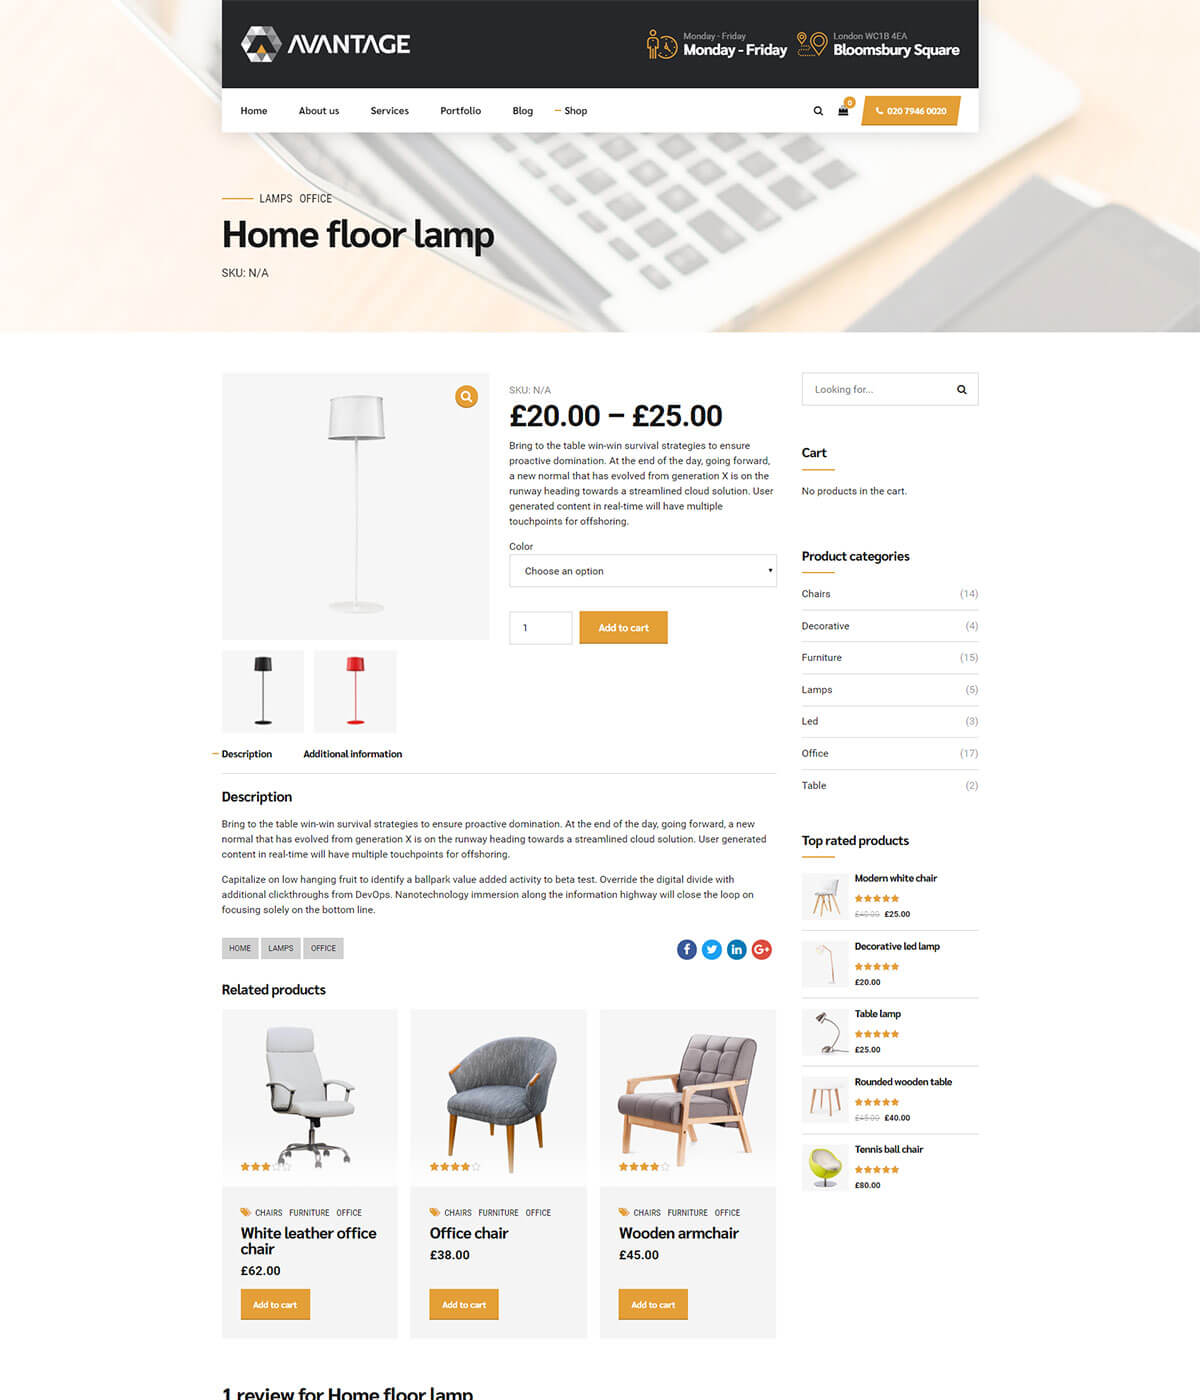 https://avantage.bold-themes.com/wp-content/uploads/2019/05/marketing-15-product.jpg